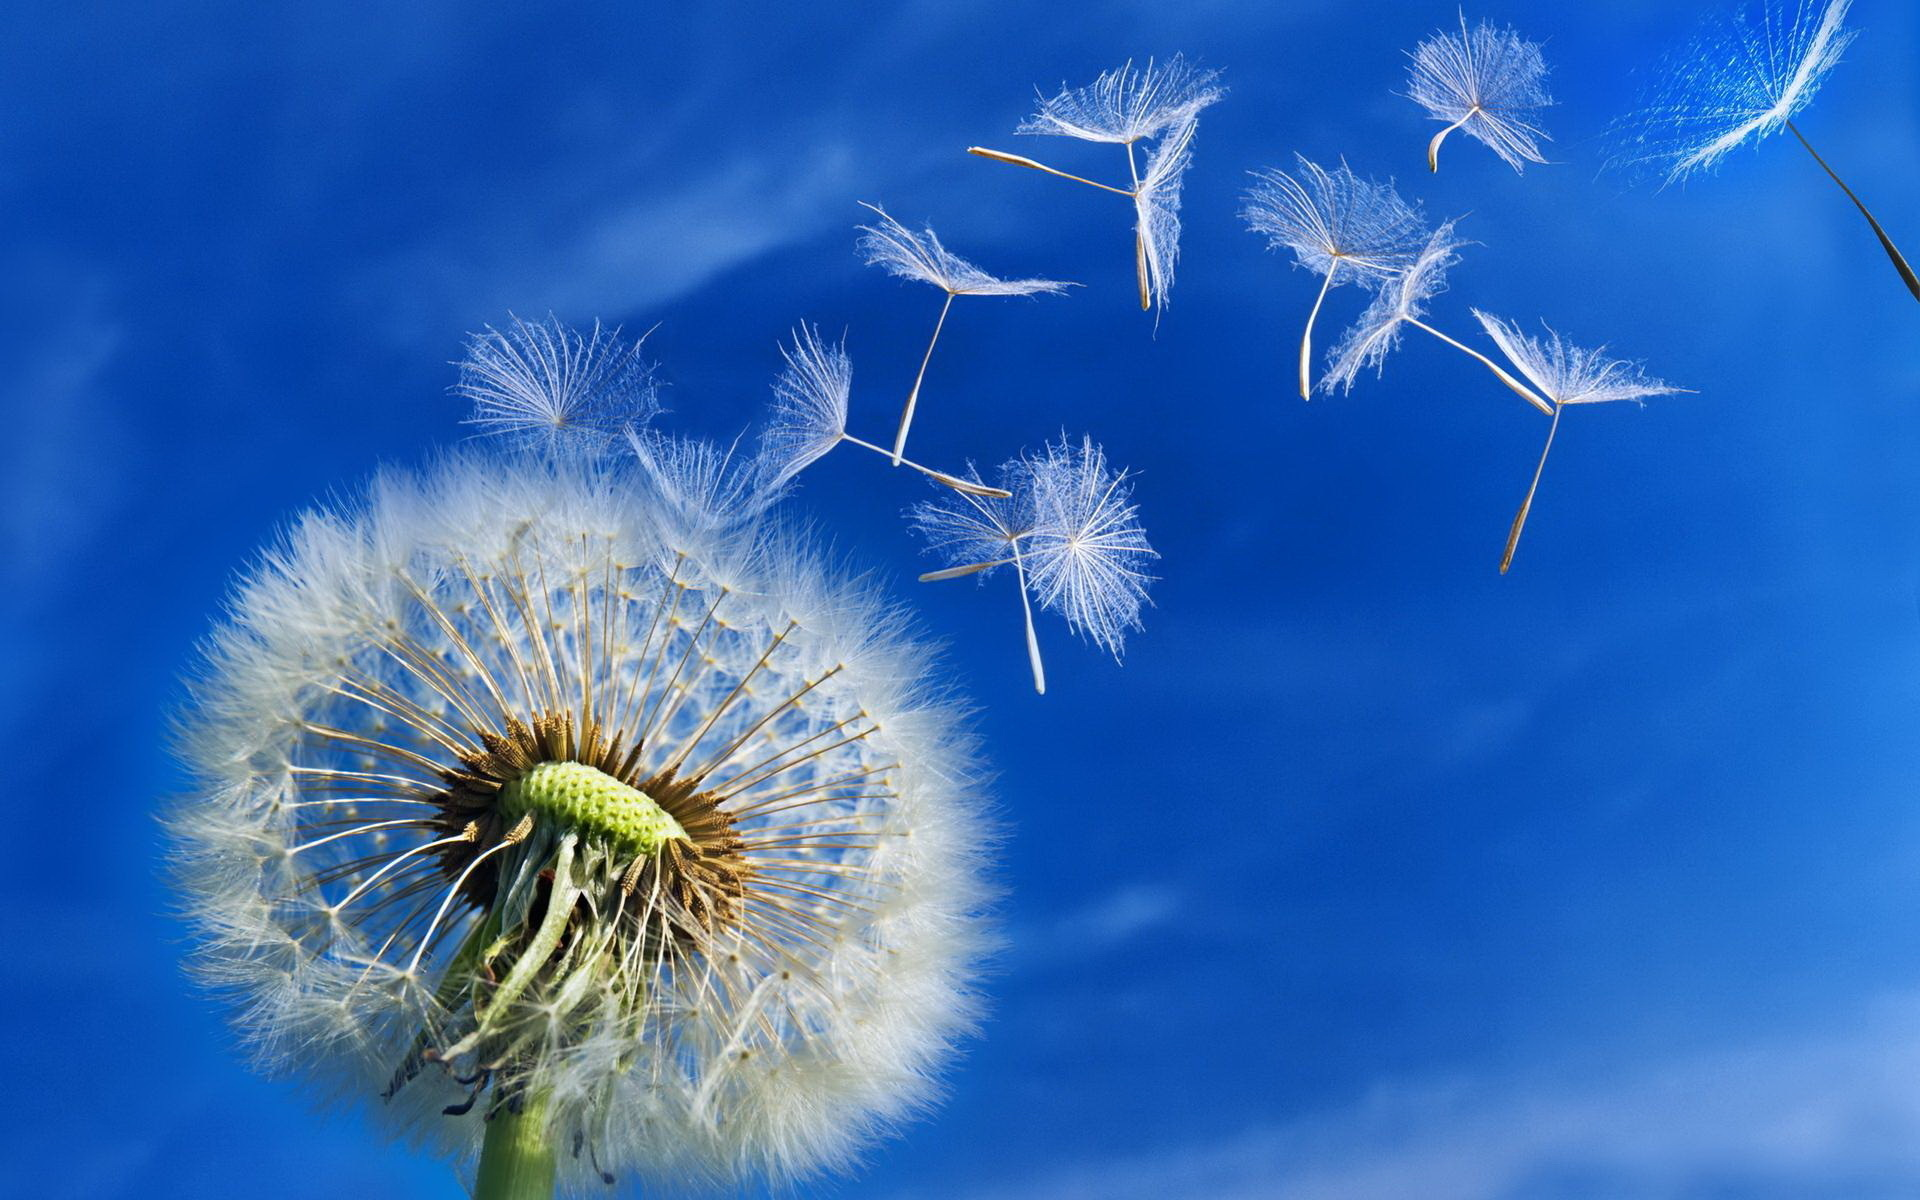 Dandelion-Background-Wallpapers-HD-Free-Download-08